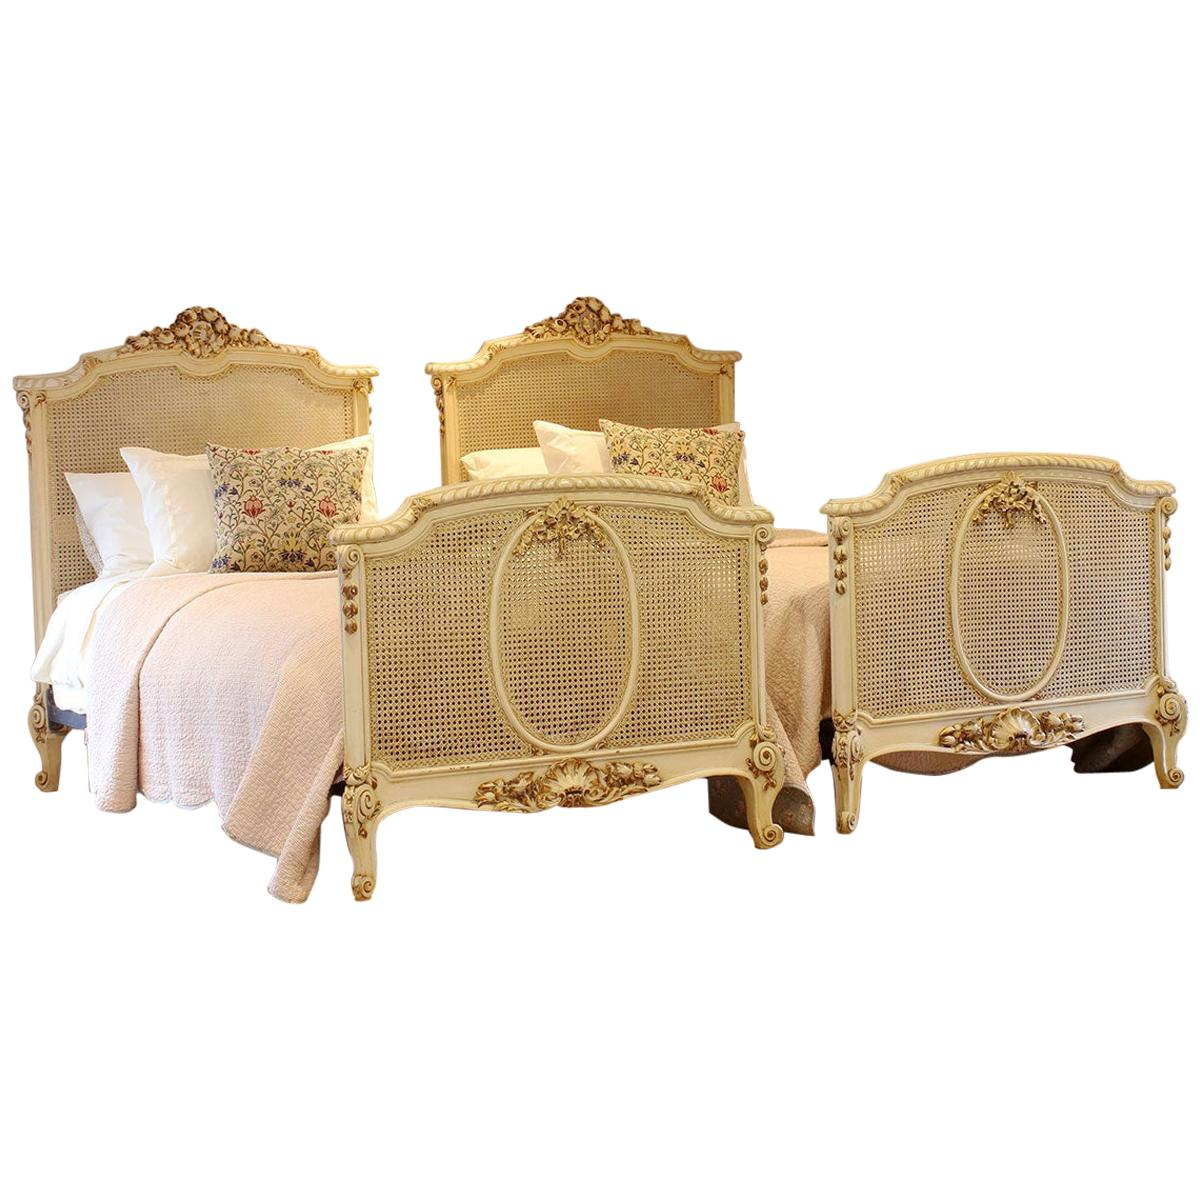 Matching Pair of Twin Louis XVI Style Antique Beds, WP31